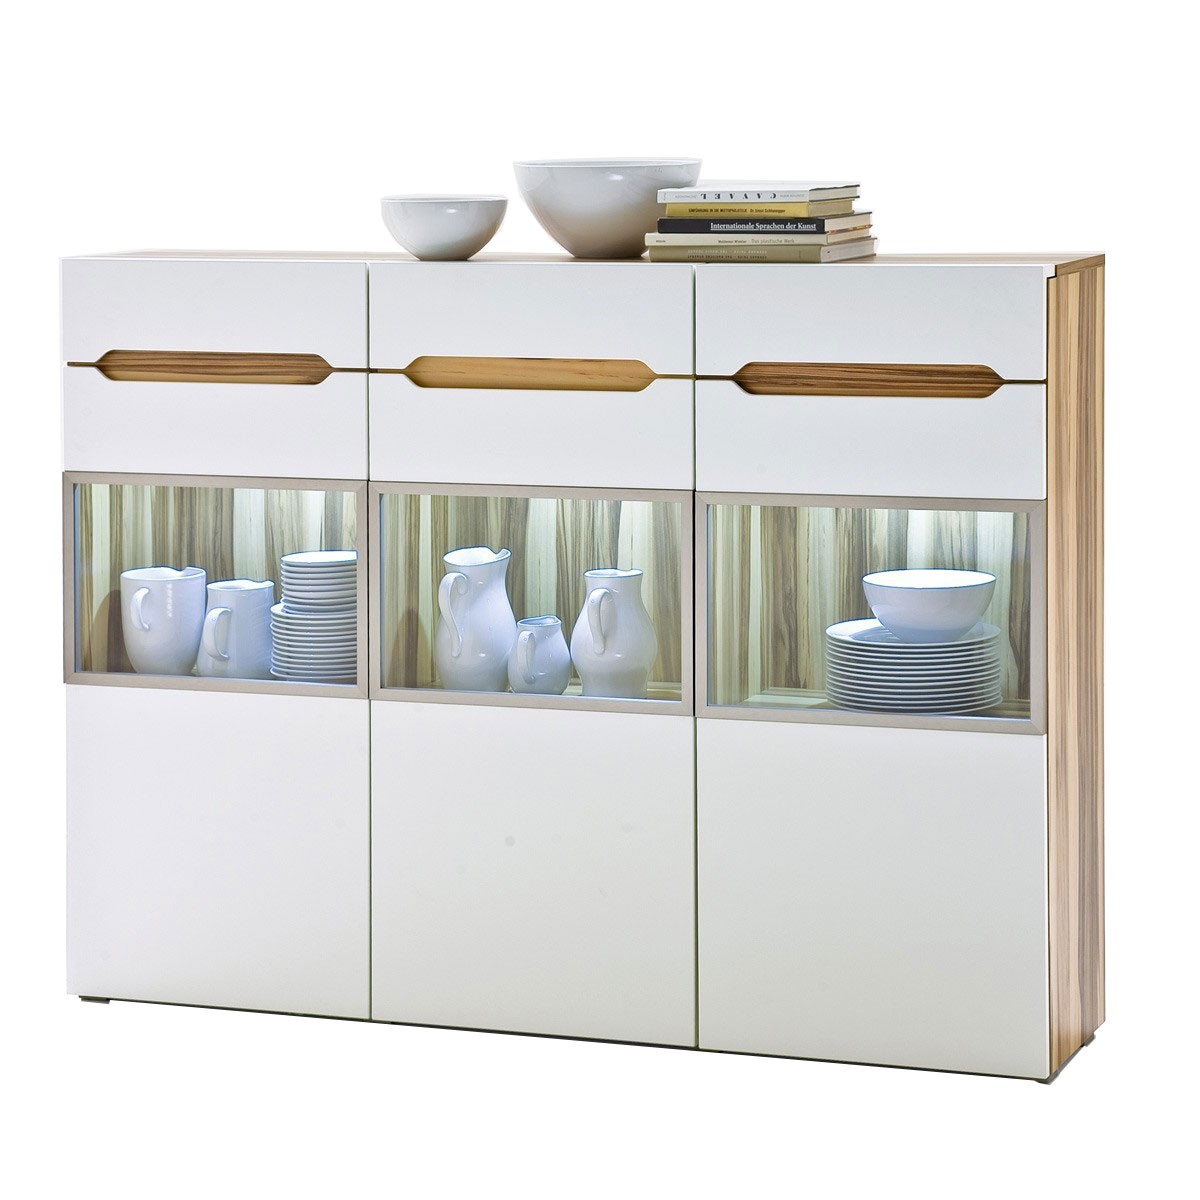 highboard schrank kommode in creme wei baltimore walnuss 165cm breit ebay. Black Bedroom Furniture Sets. Home Design Ideas